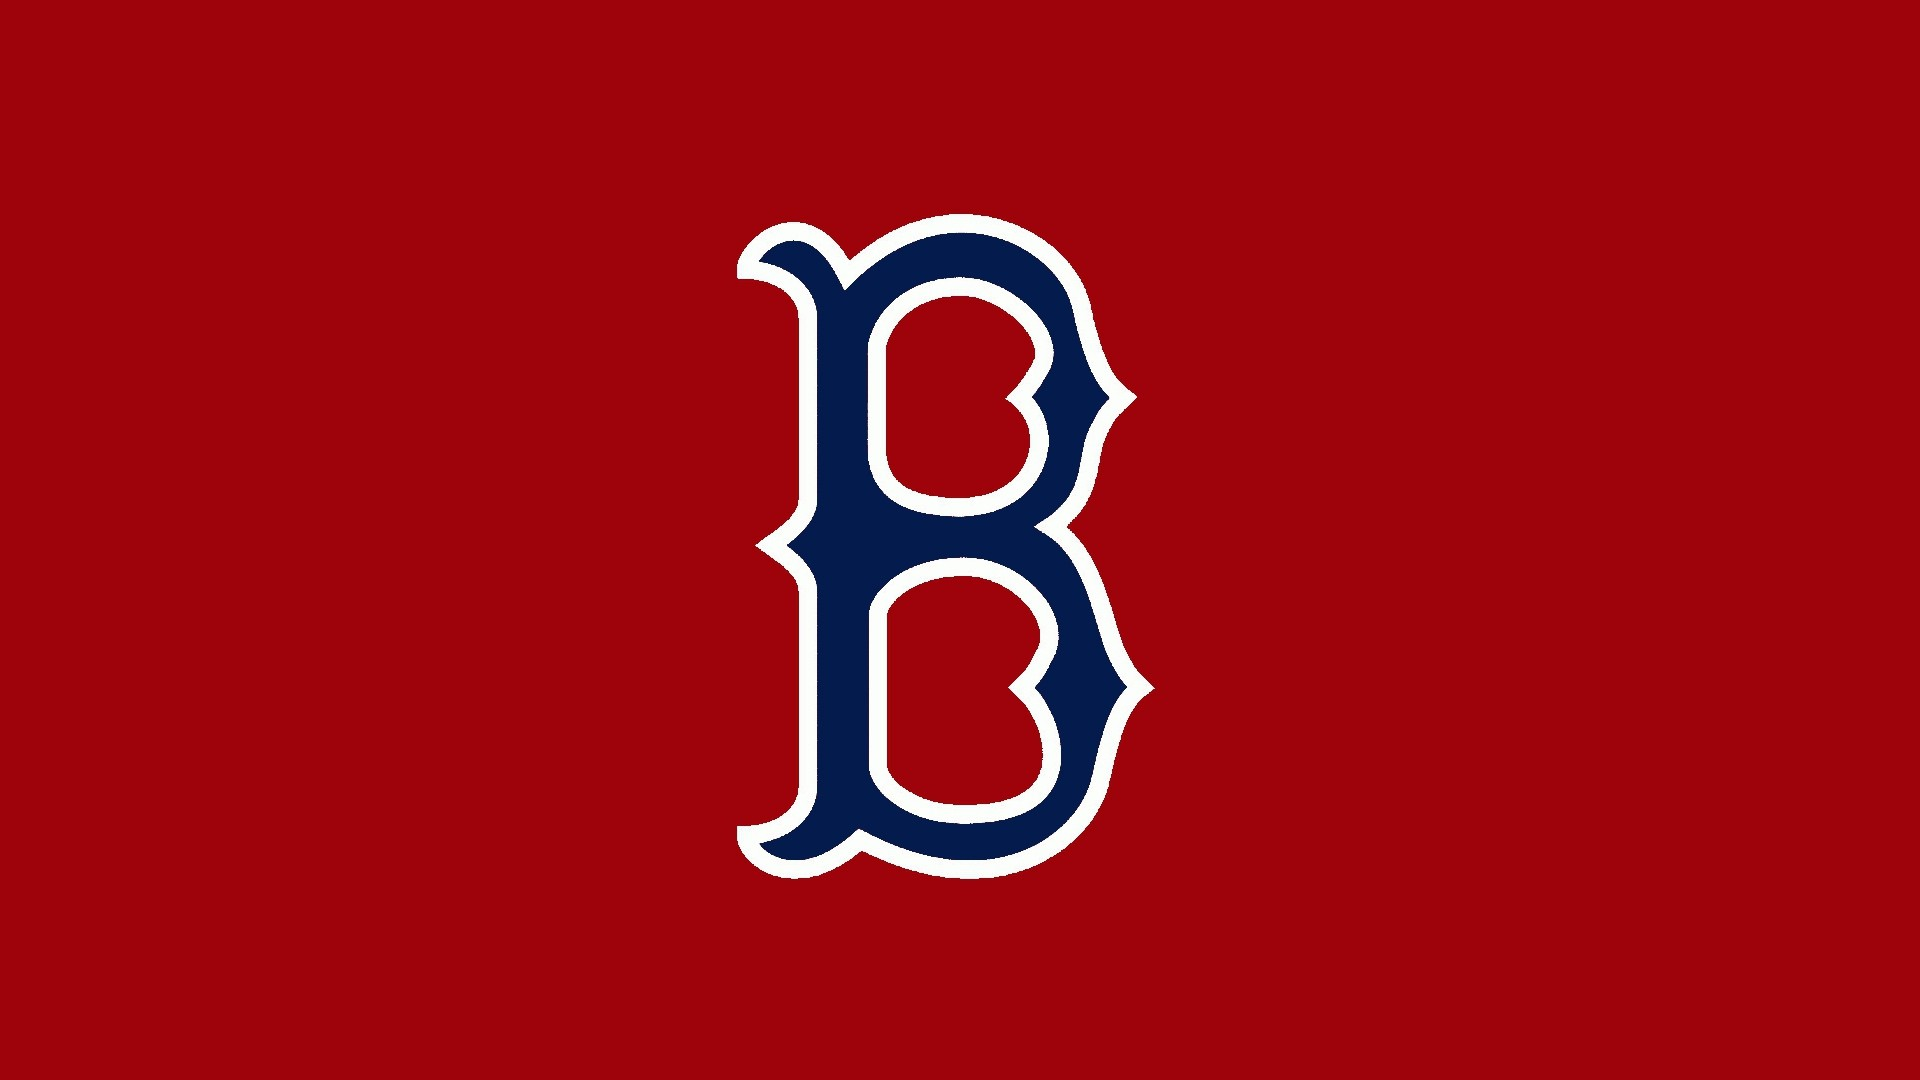 Boston Red Sox iPhone Wallpaper Background | MLB WALLPAPERS .